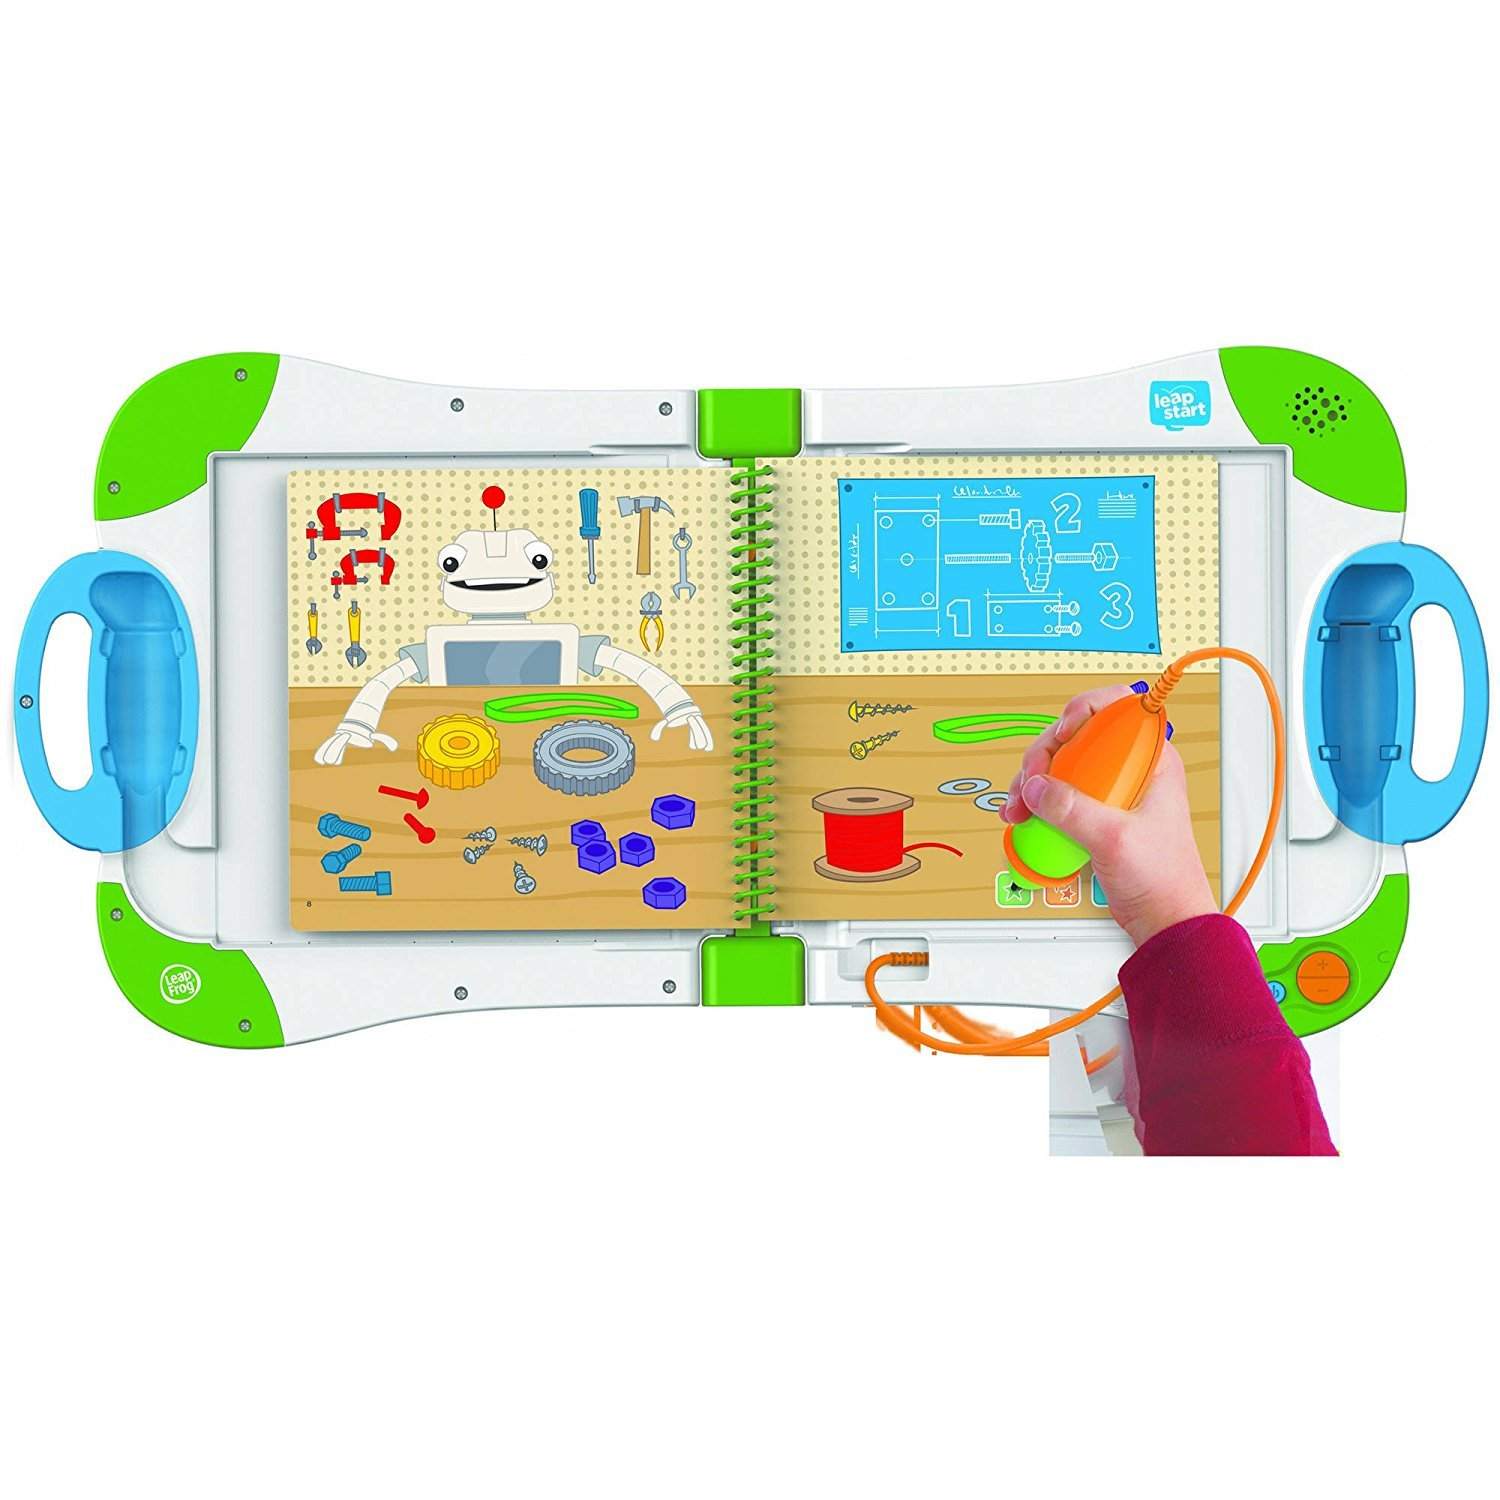 LeapFrog LeapStart Preschool, Pre-Kindergarten Interactive Learning System For Kids Level 2 Ages 2-4 With Junior Activity Books: STEM, Math, Read & Write & First Day School Fun Activity Bundle by LeapFrog (Image #2)